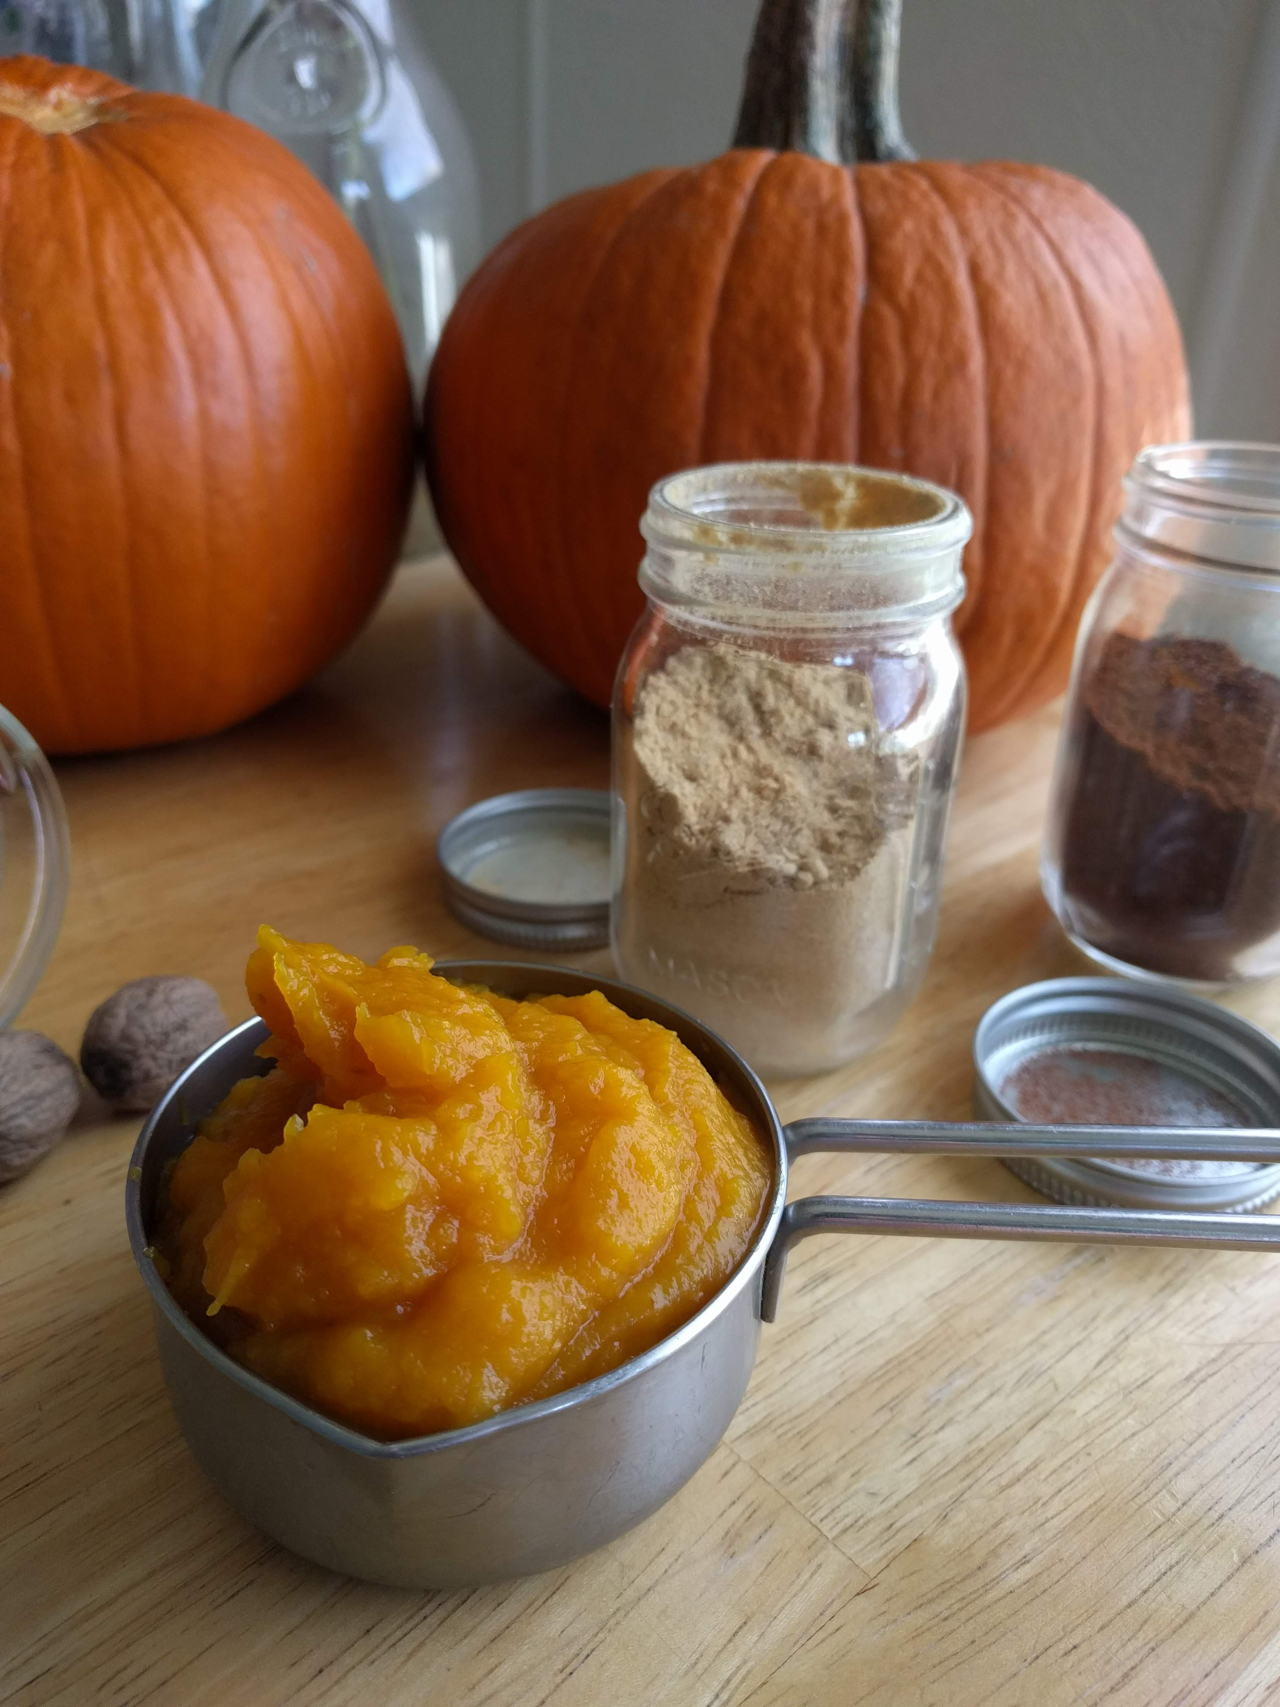 How To Make Pumpkin Pie Filling, an easy, vegan recipe that can be made in minutes! Great for your holiday baking // Vegan, date-sweetened, and delicious! #recipe #pumpkin #holidayrecipe #pumpkinrecipe #healthyrecipes